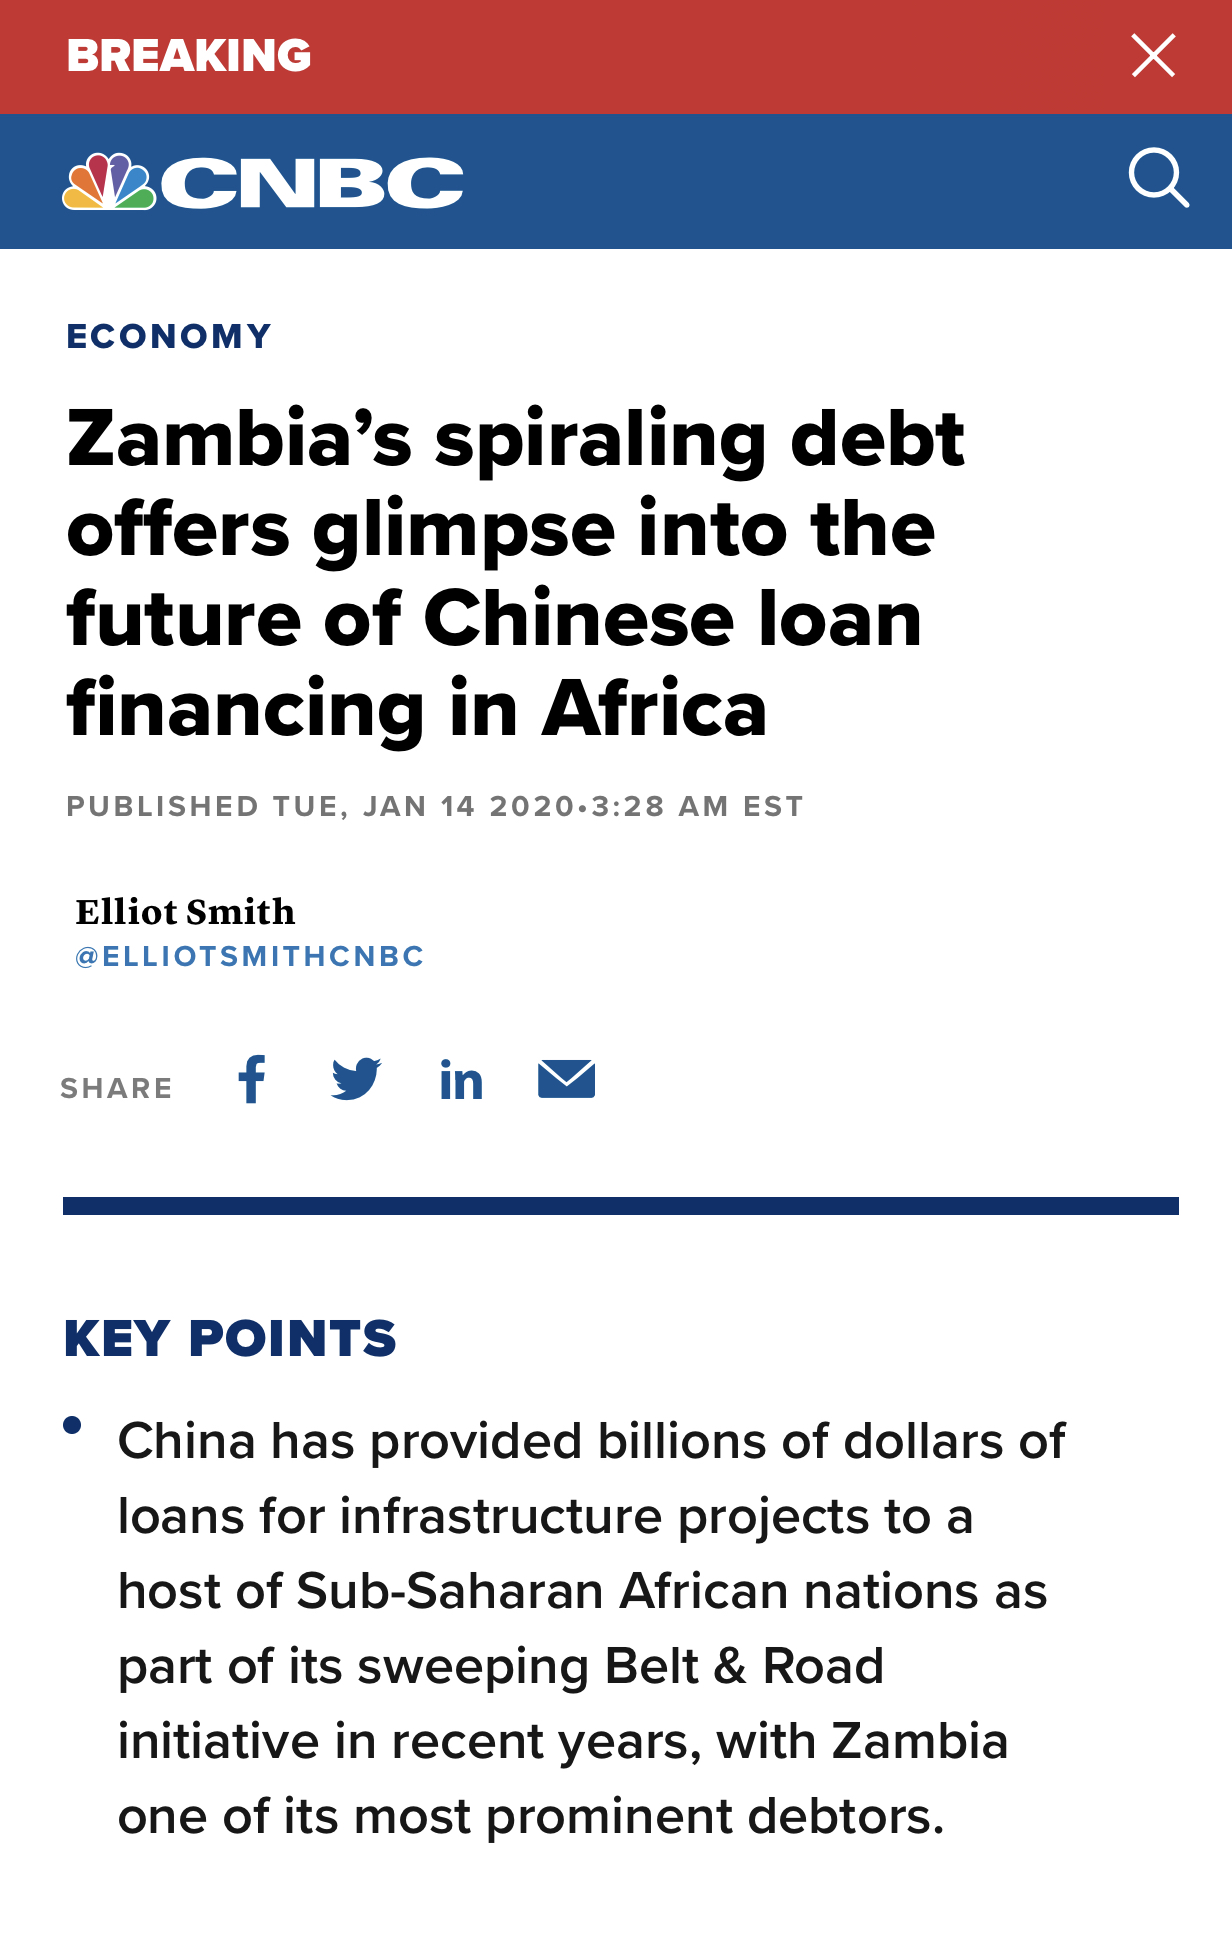 Zambia's spiraling debt offers glimpse into the future of Chinese loan financing in Africa